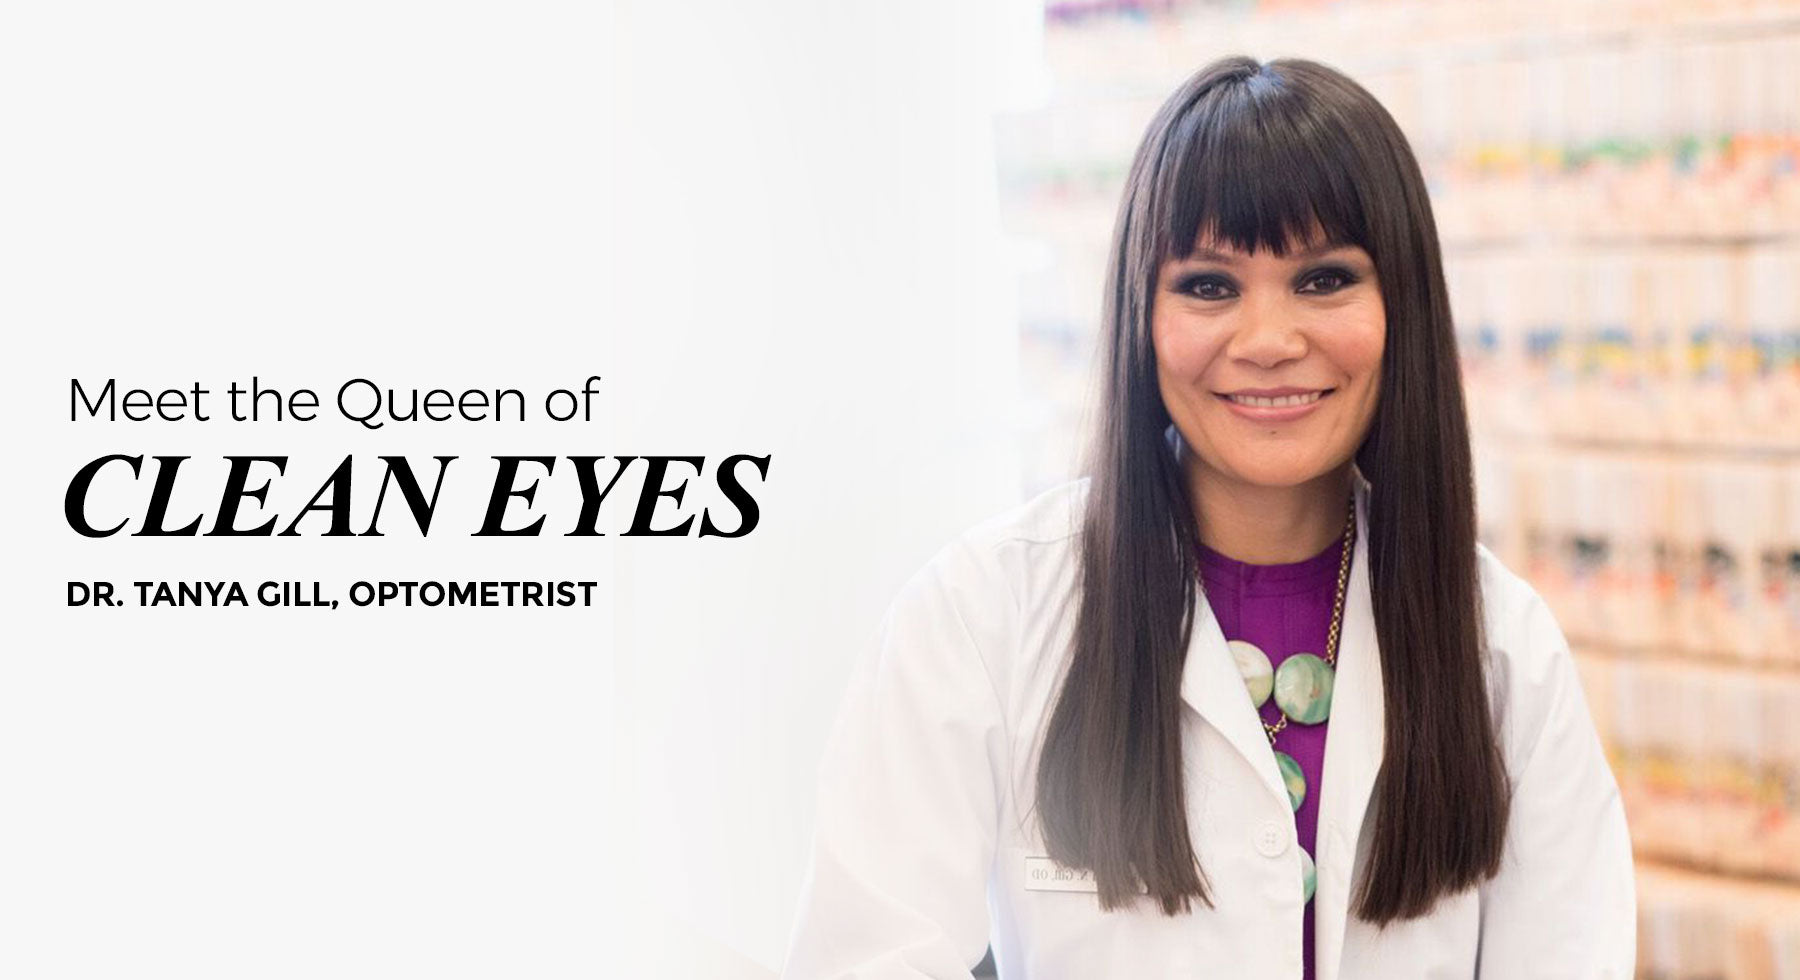 Meet the Queen of Clean Eyes: Dr. Tanya Gill, Optometrist